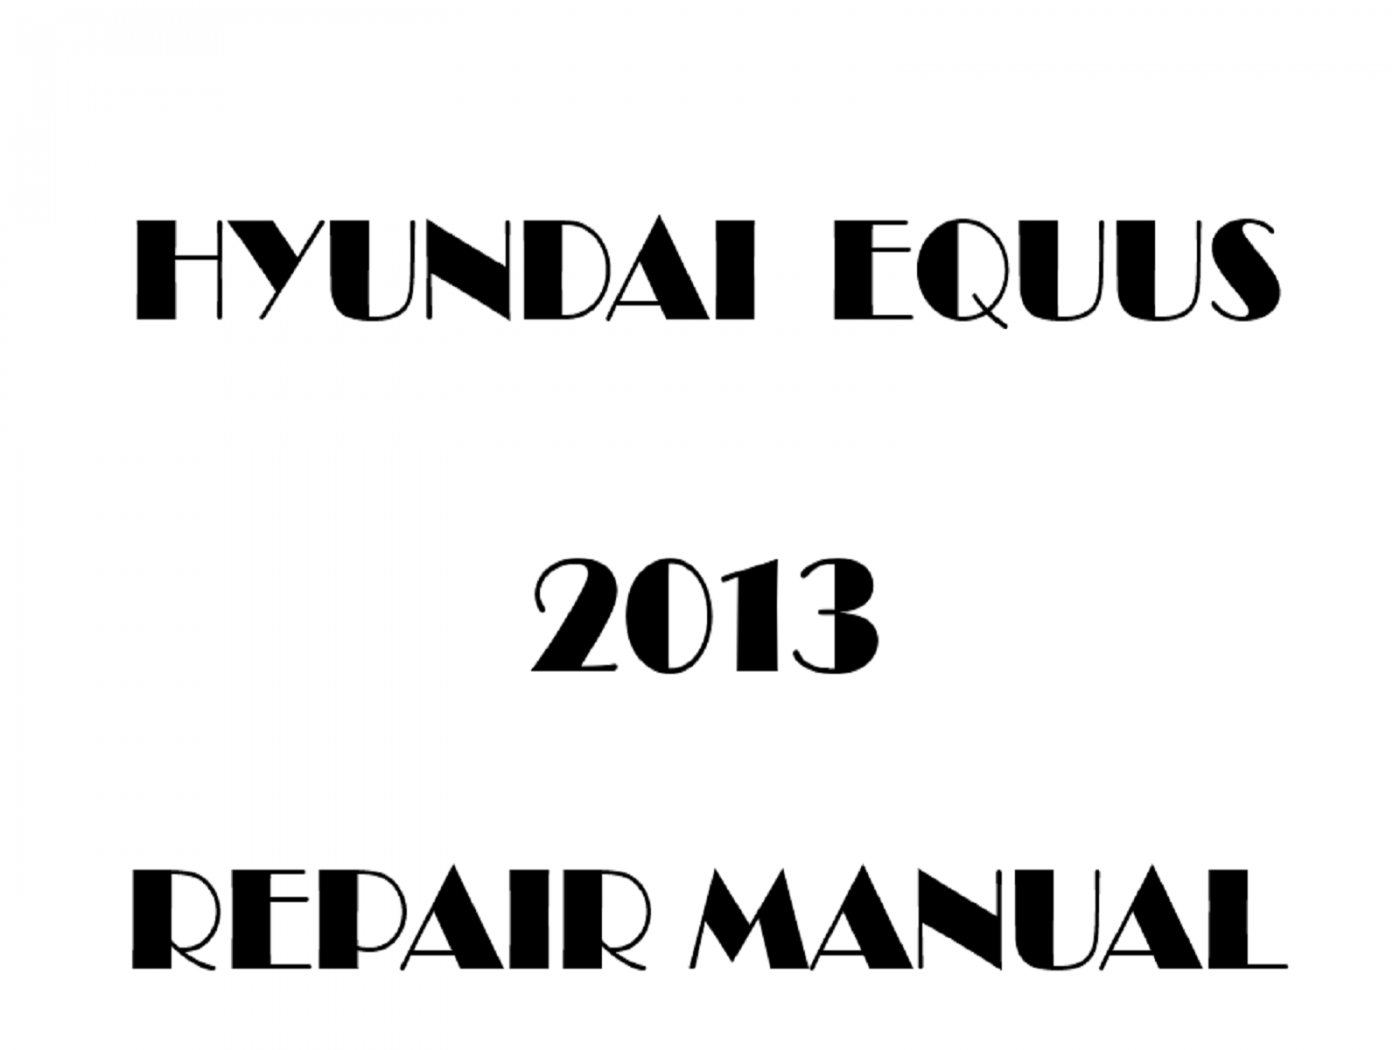 2013 Hyundai Equus repair manual